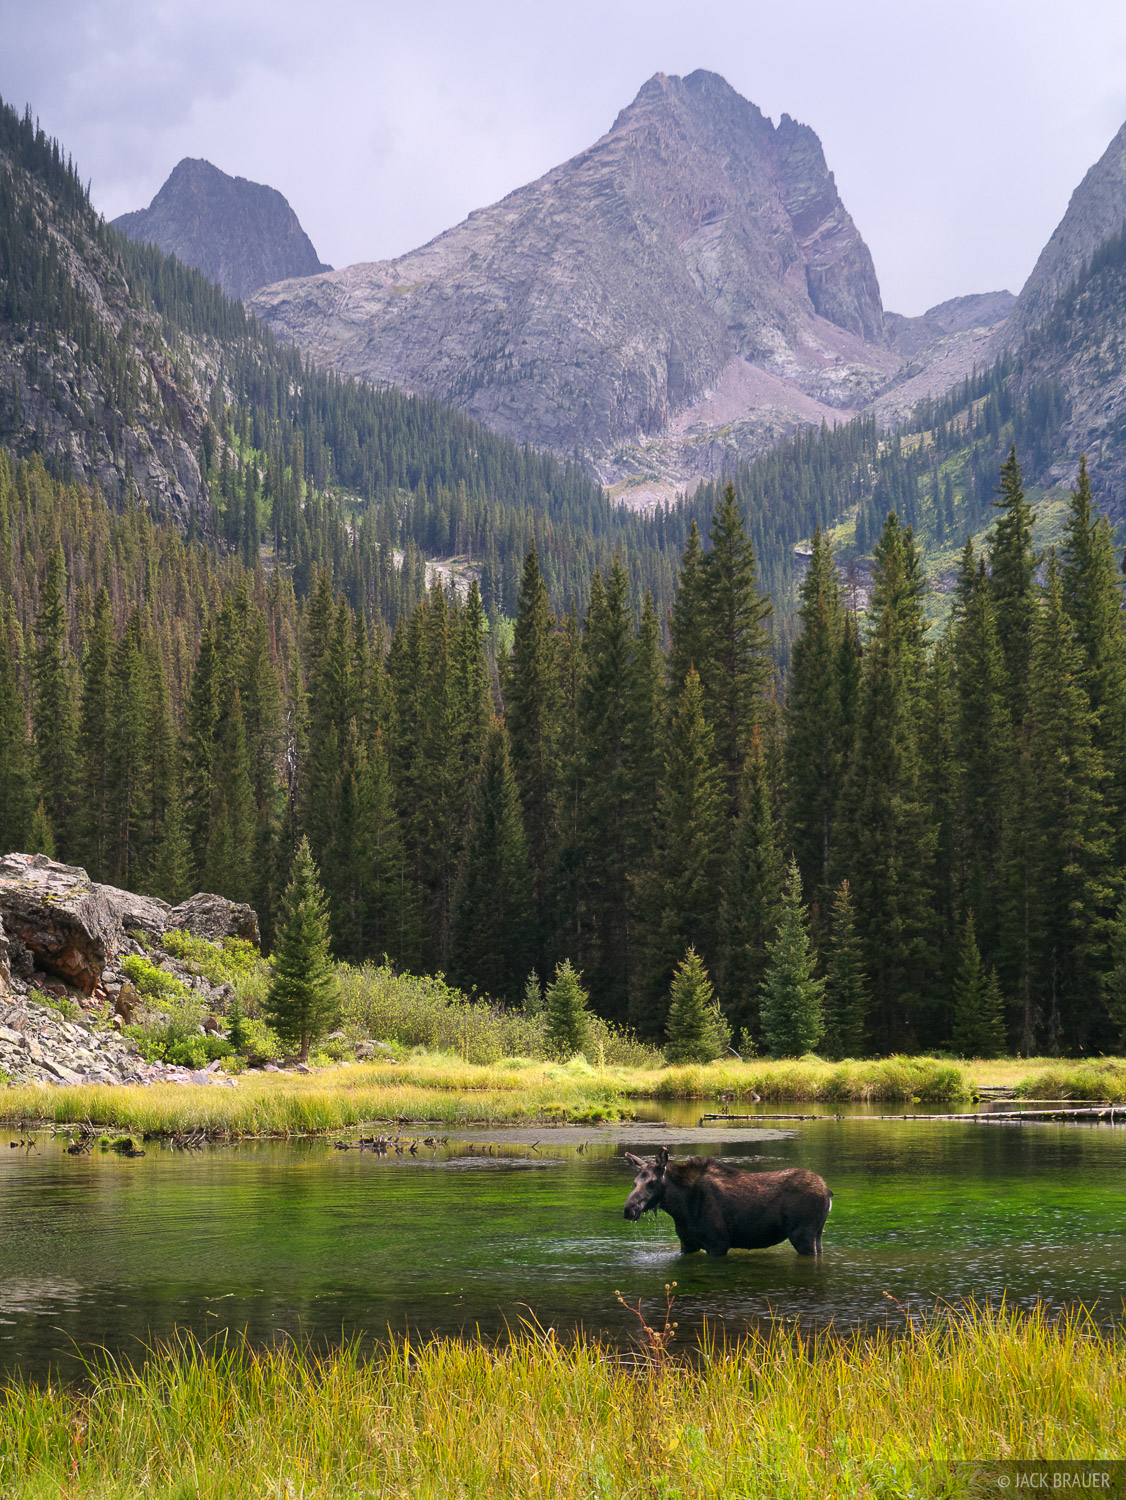 Moose, Elk Creek, Beaver Ponds, Arrow Peak, Grenadier Range, San Juan Mountains, Colorado, photo